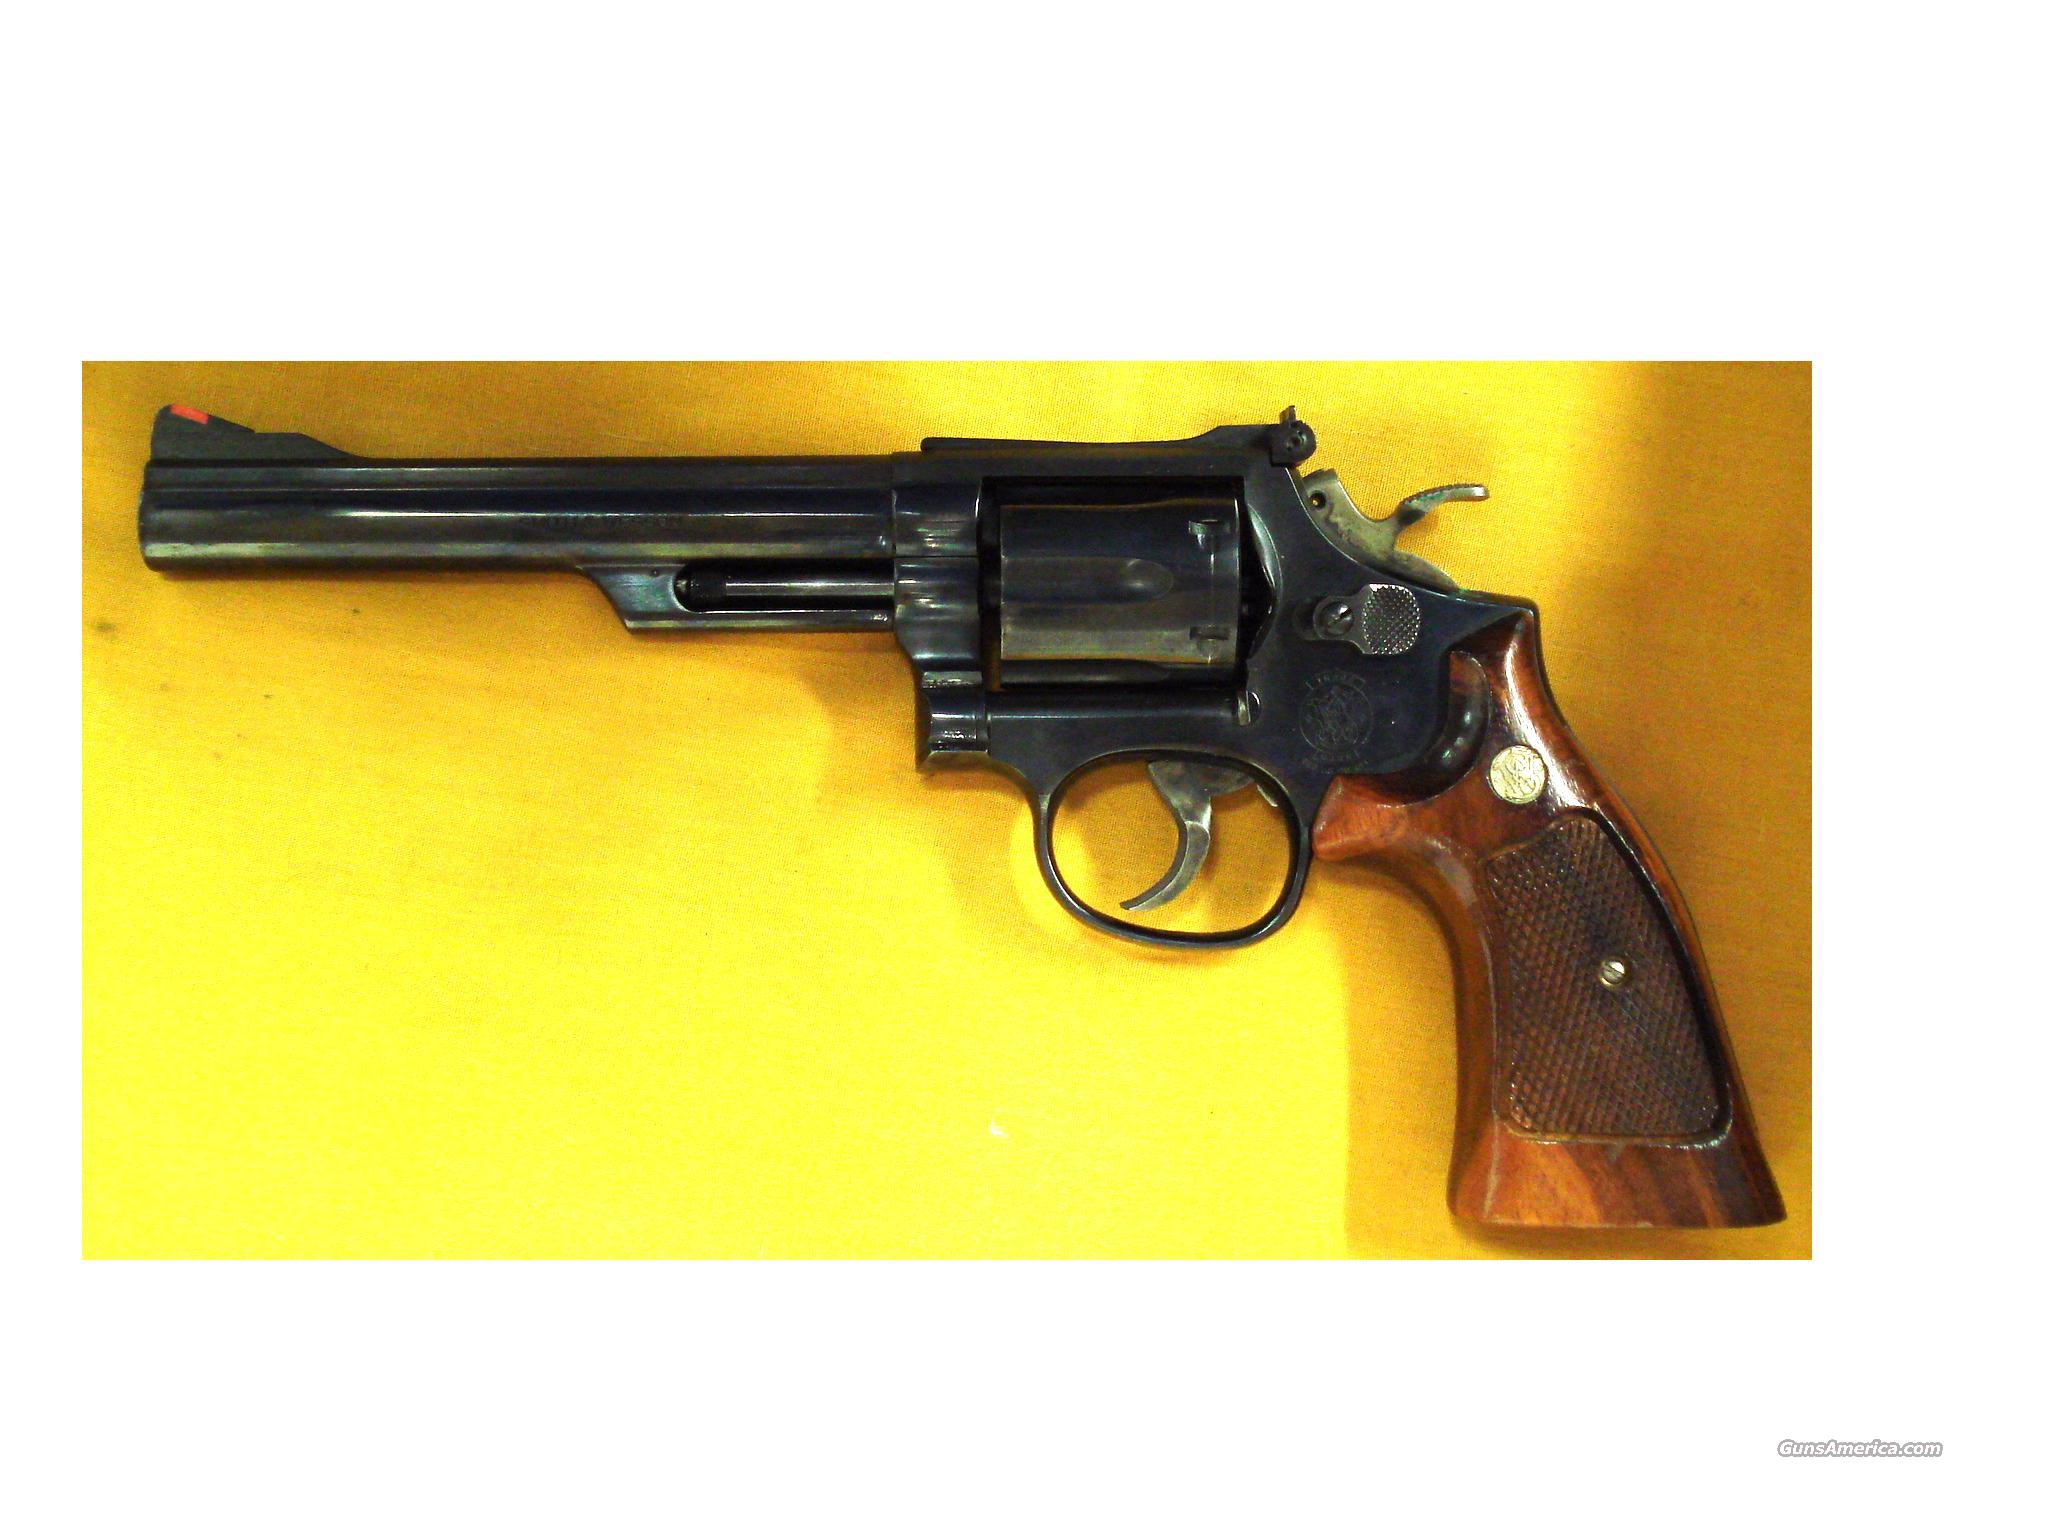 "S&W 19-5 .357 6"" BARREL  Guns > Pistols > Smith & Wesson Revolvers > Full Frame Revolver"